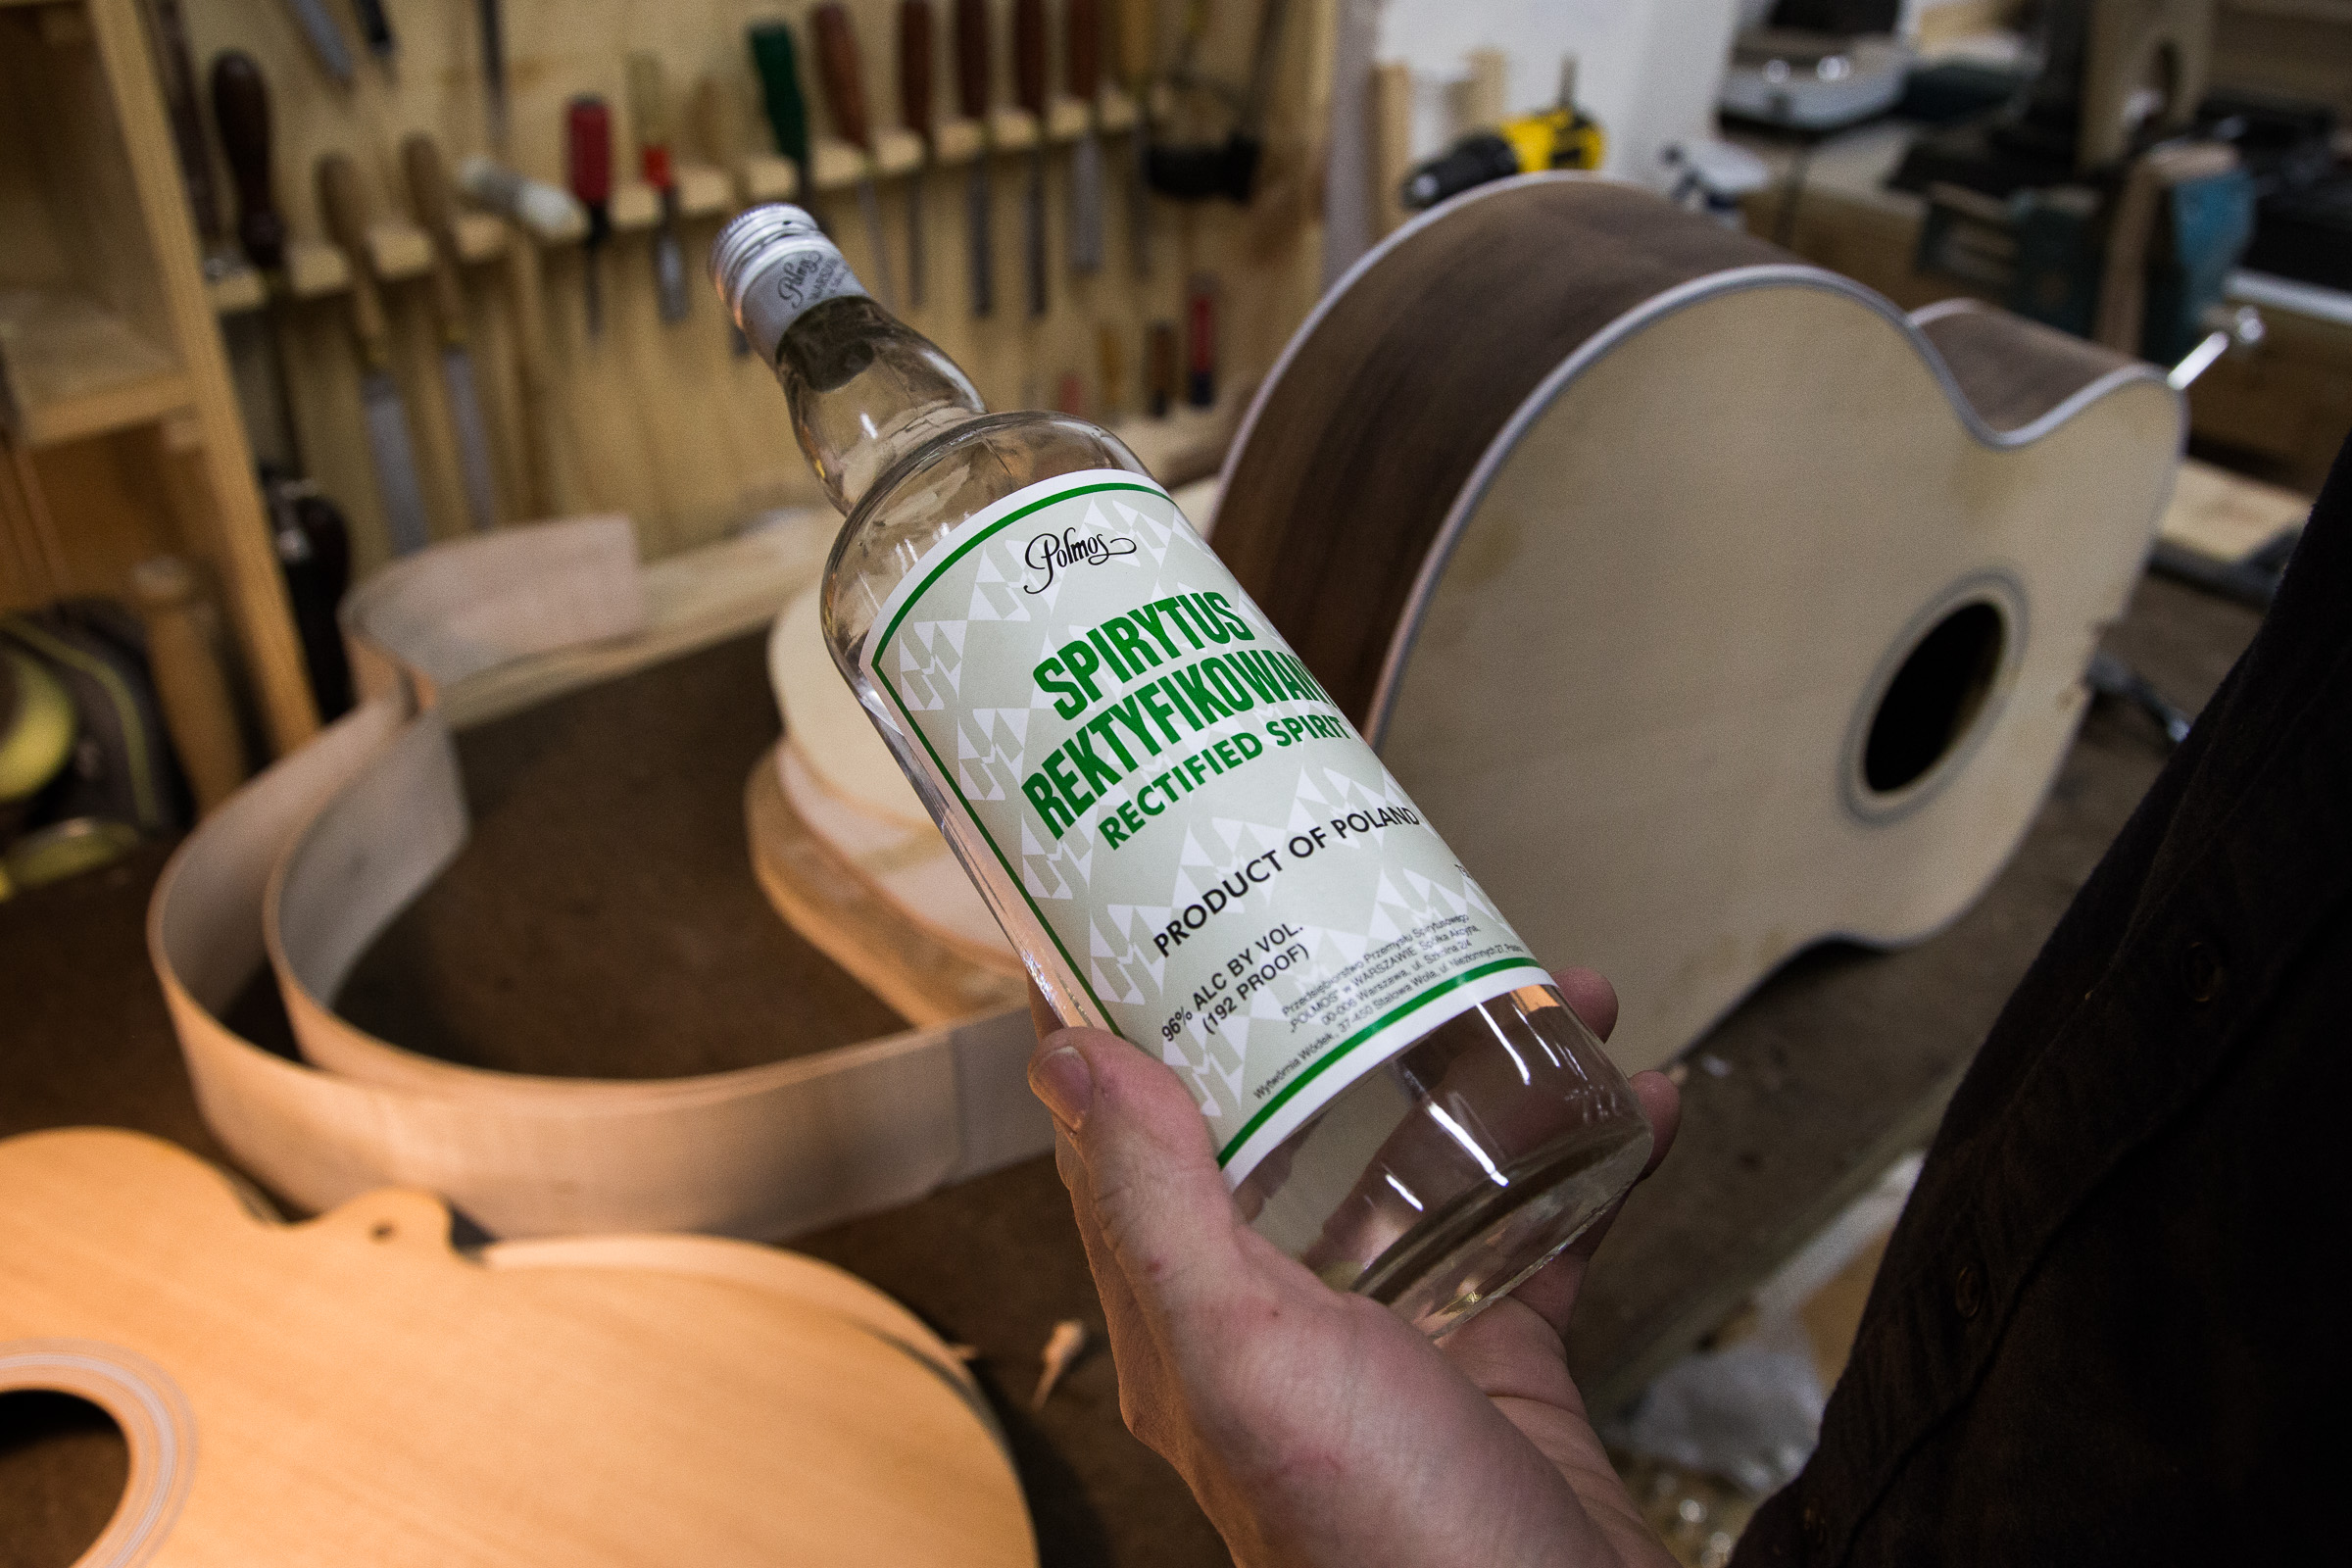 The Secret Sauce: Krugman combines this Polish spirit with shellac to finish his guitars